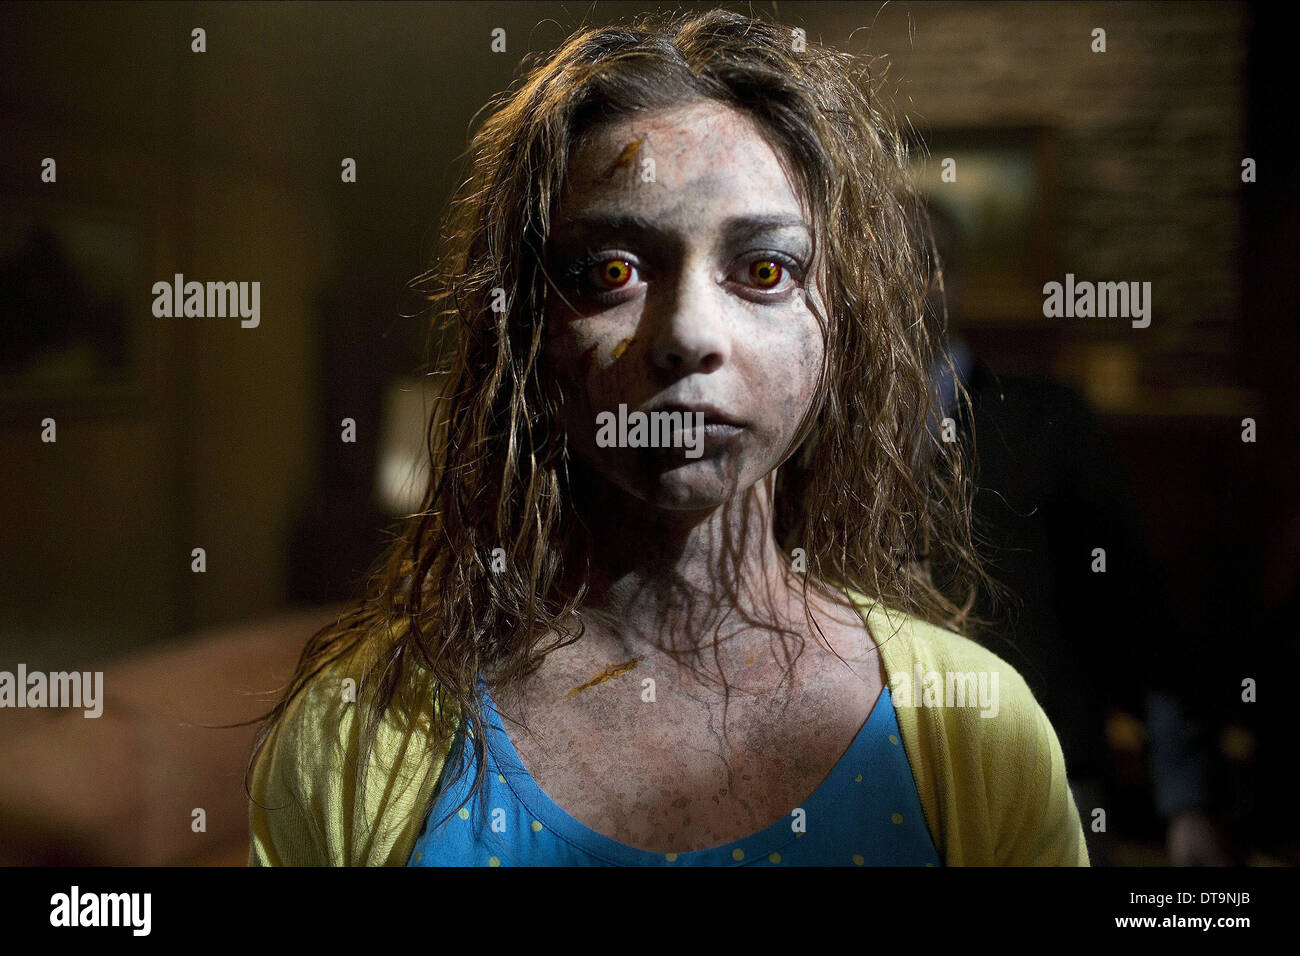 Sarah Hyland Scary Movie 5 2013 Stock Photo Alamy